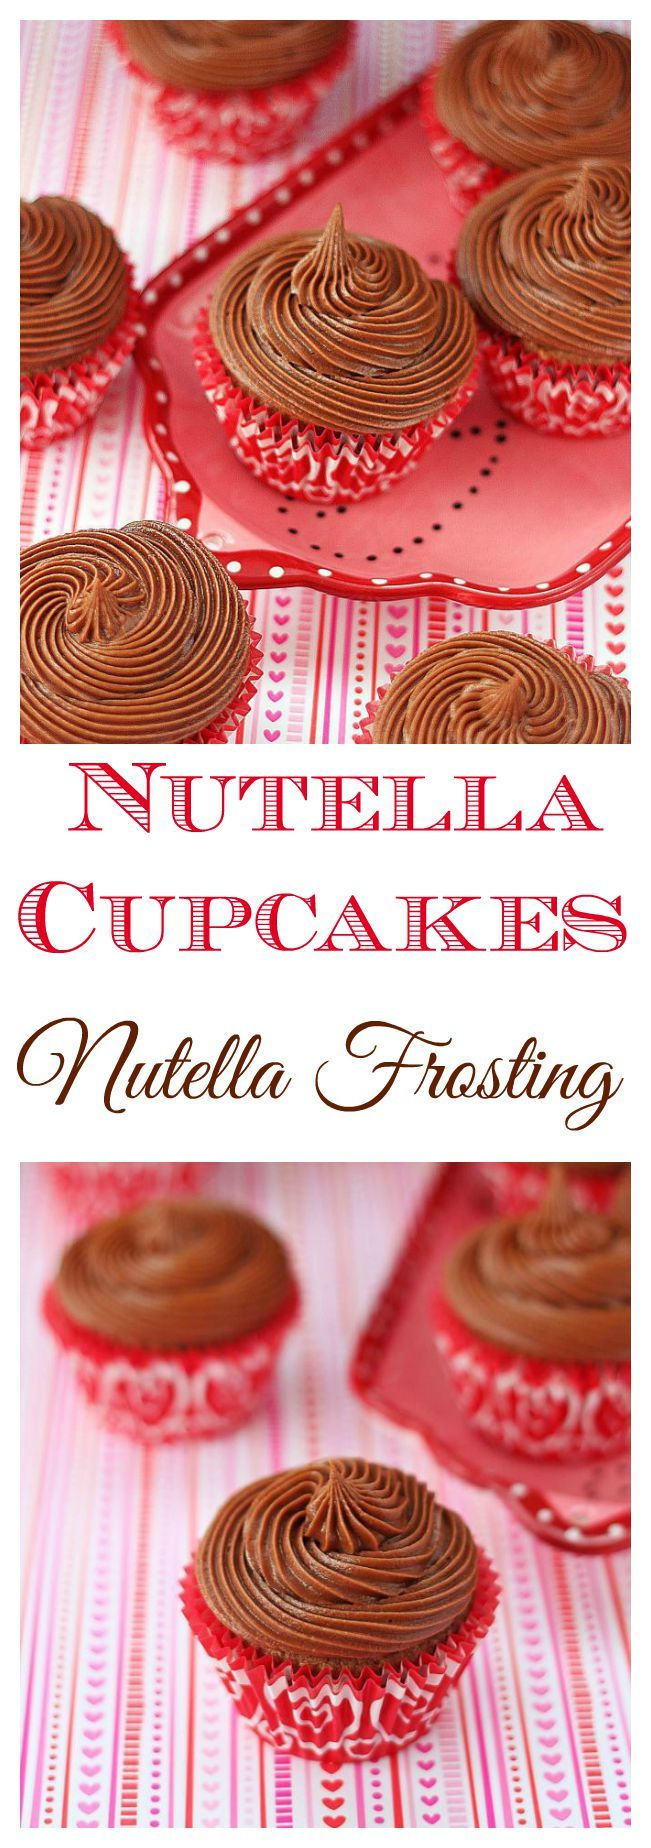 Quick Nutella Icing Recipe 88 Best Nutella Recipes Images On Pinterest